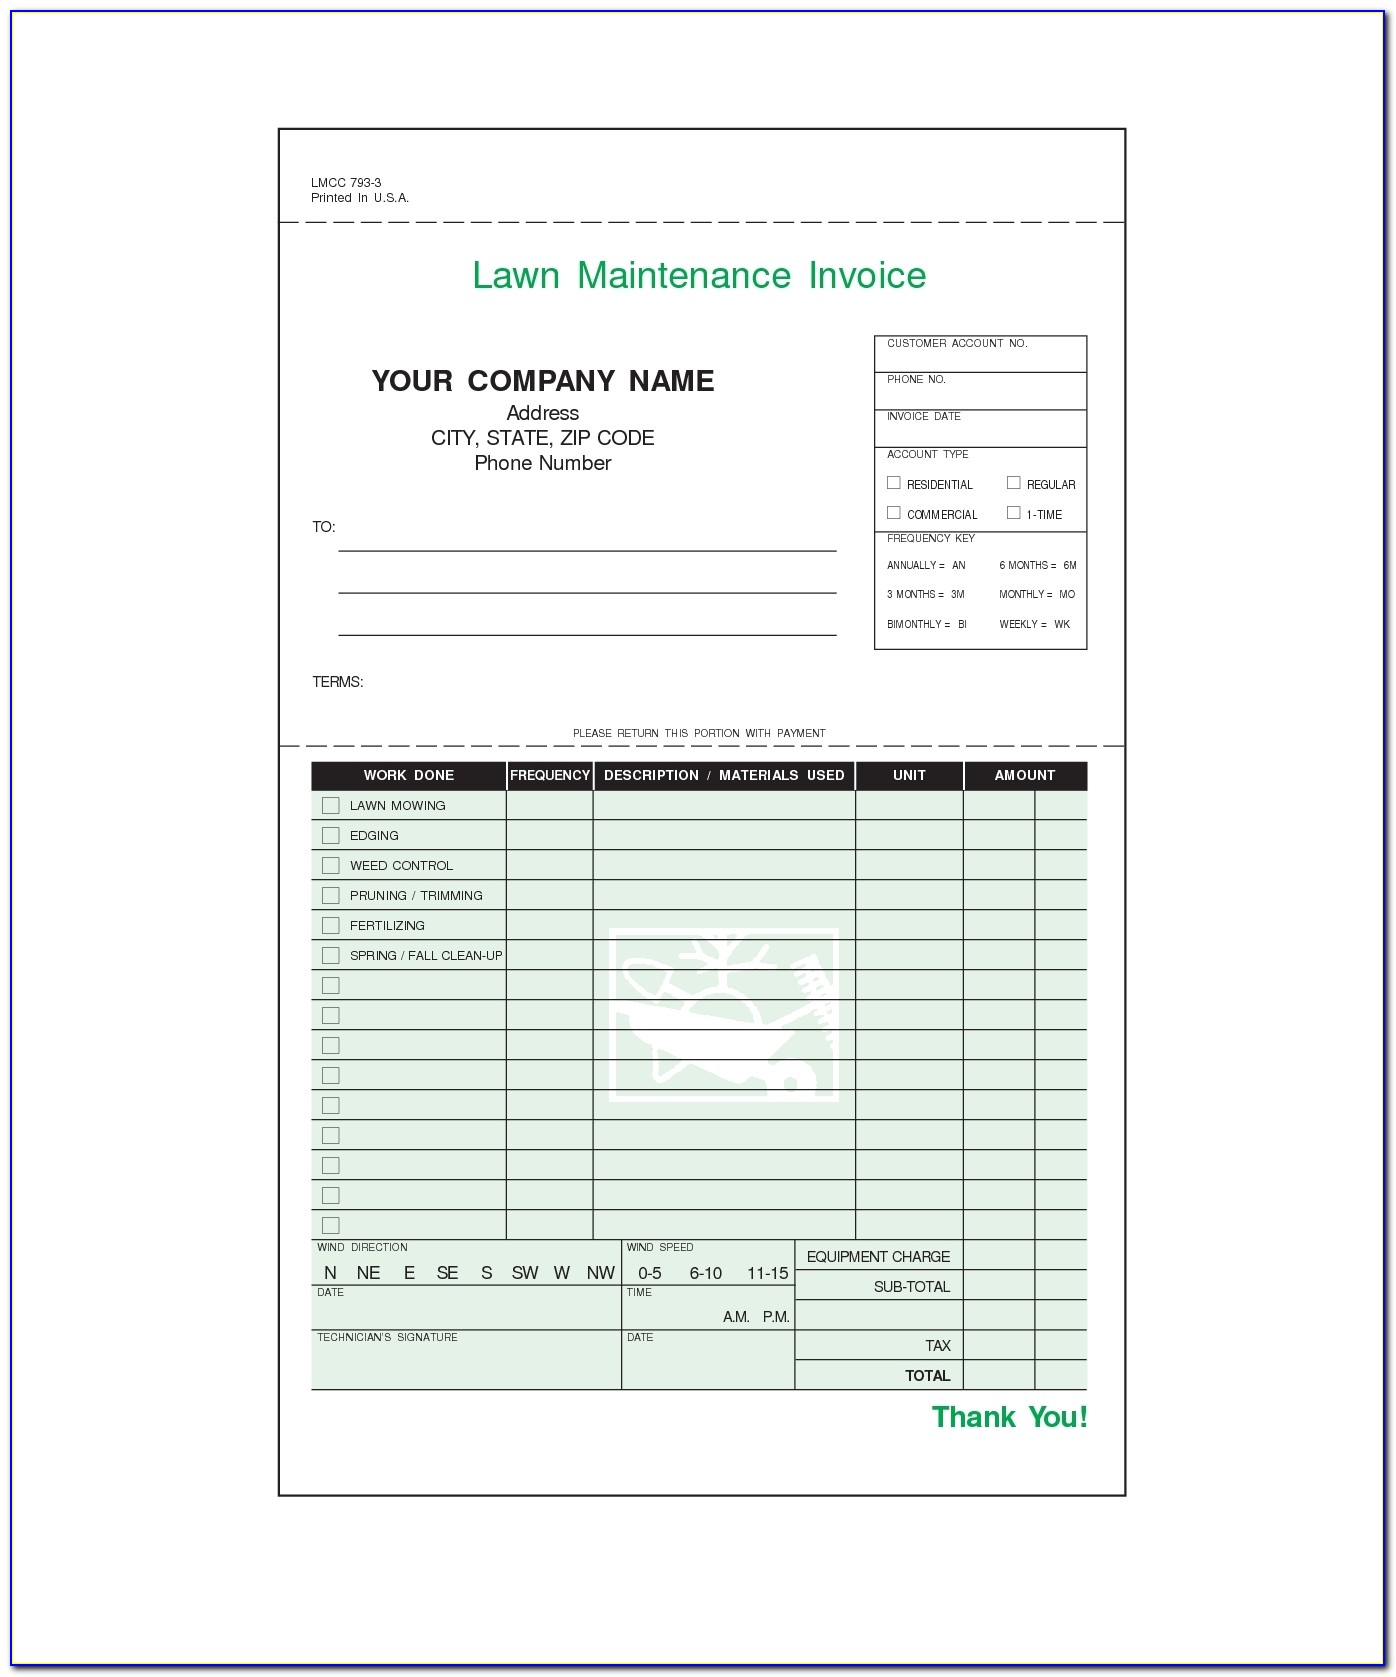 Lawn Care Invoices Invoice Template Free 2016 Lawn Maintenance Invoice